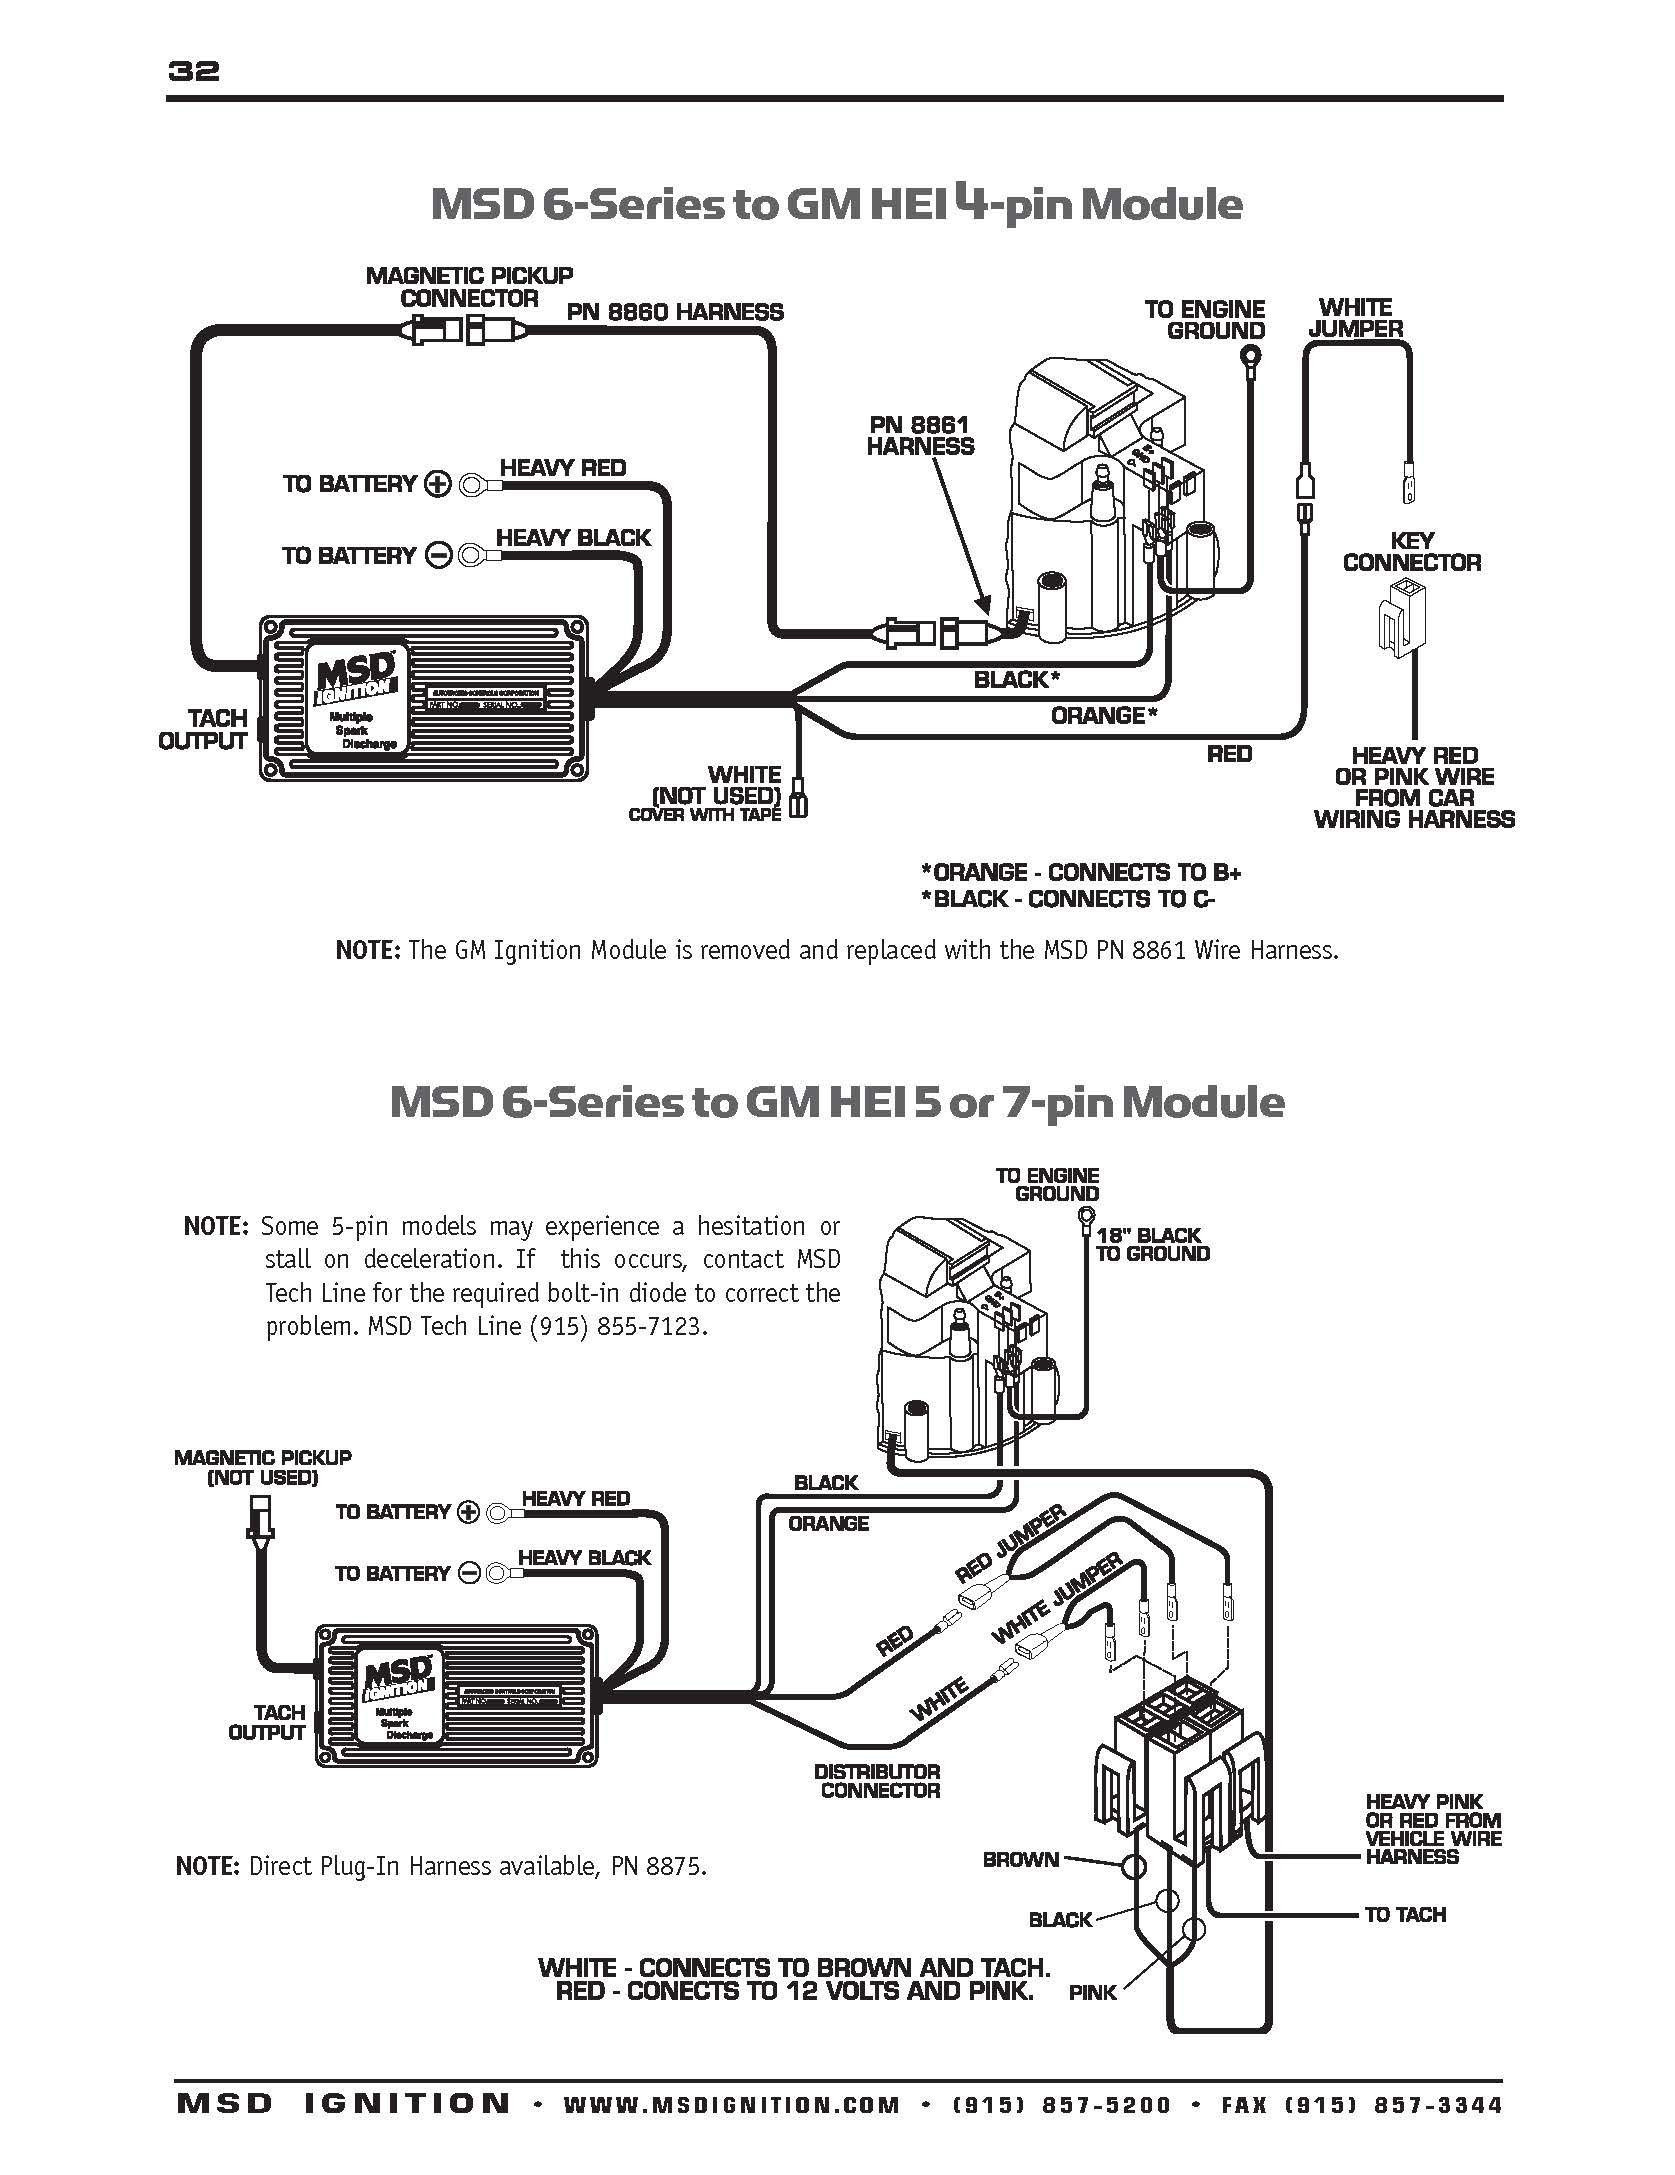 msd streetfire ignition wiring diagram view diagram data circuit rh labloom co